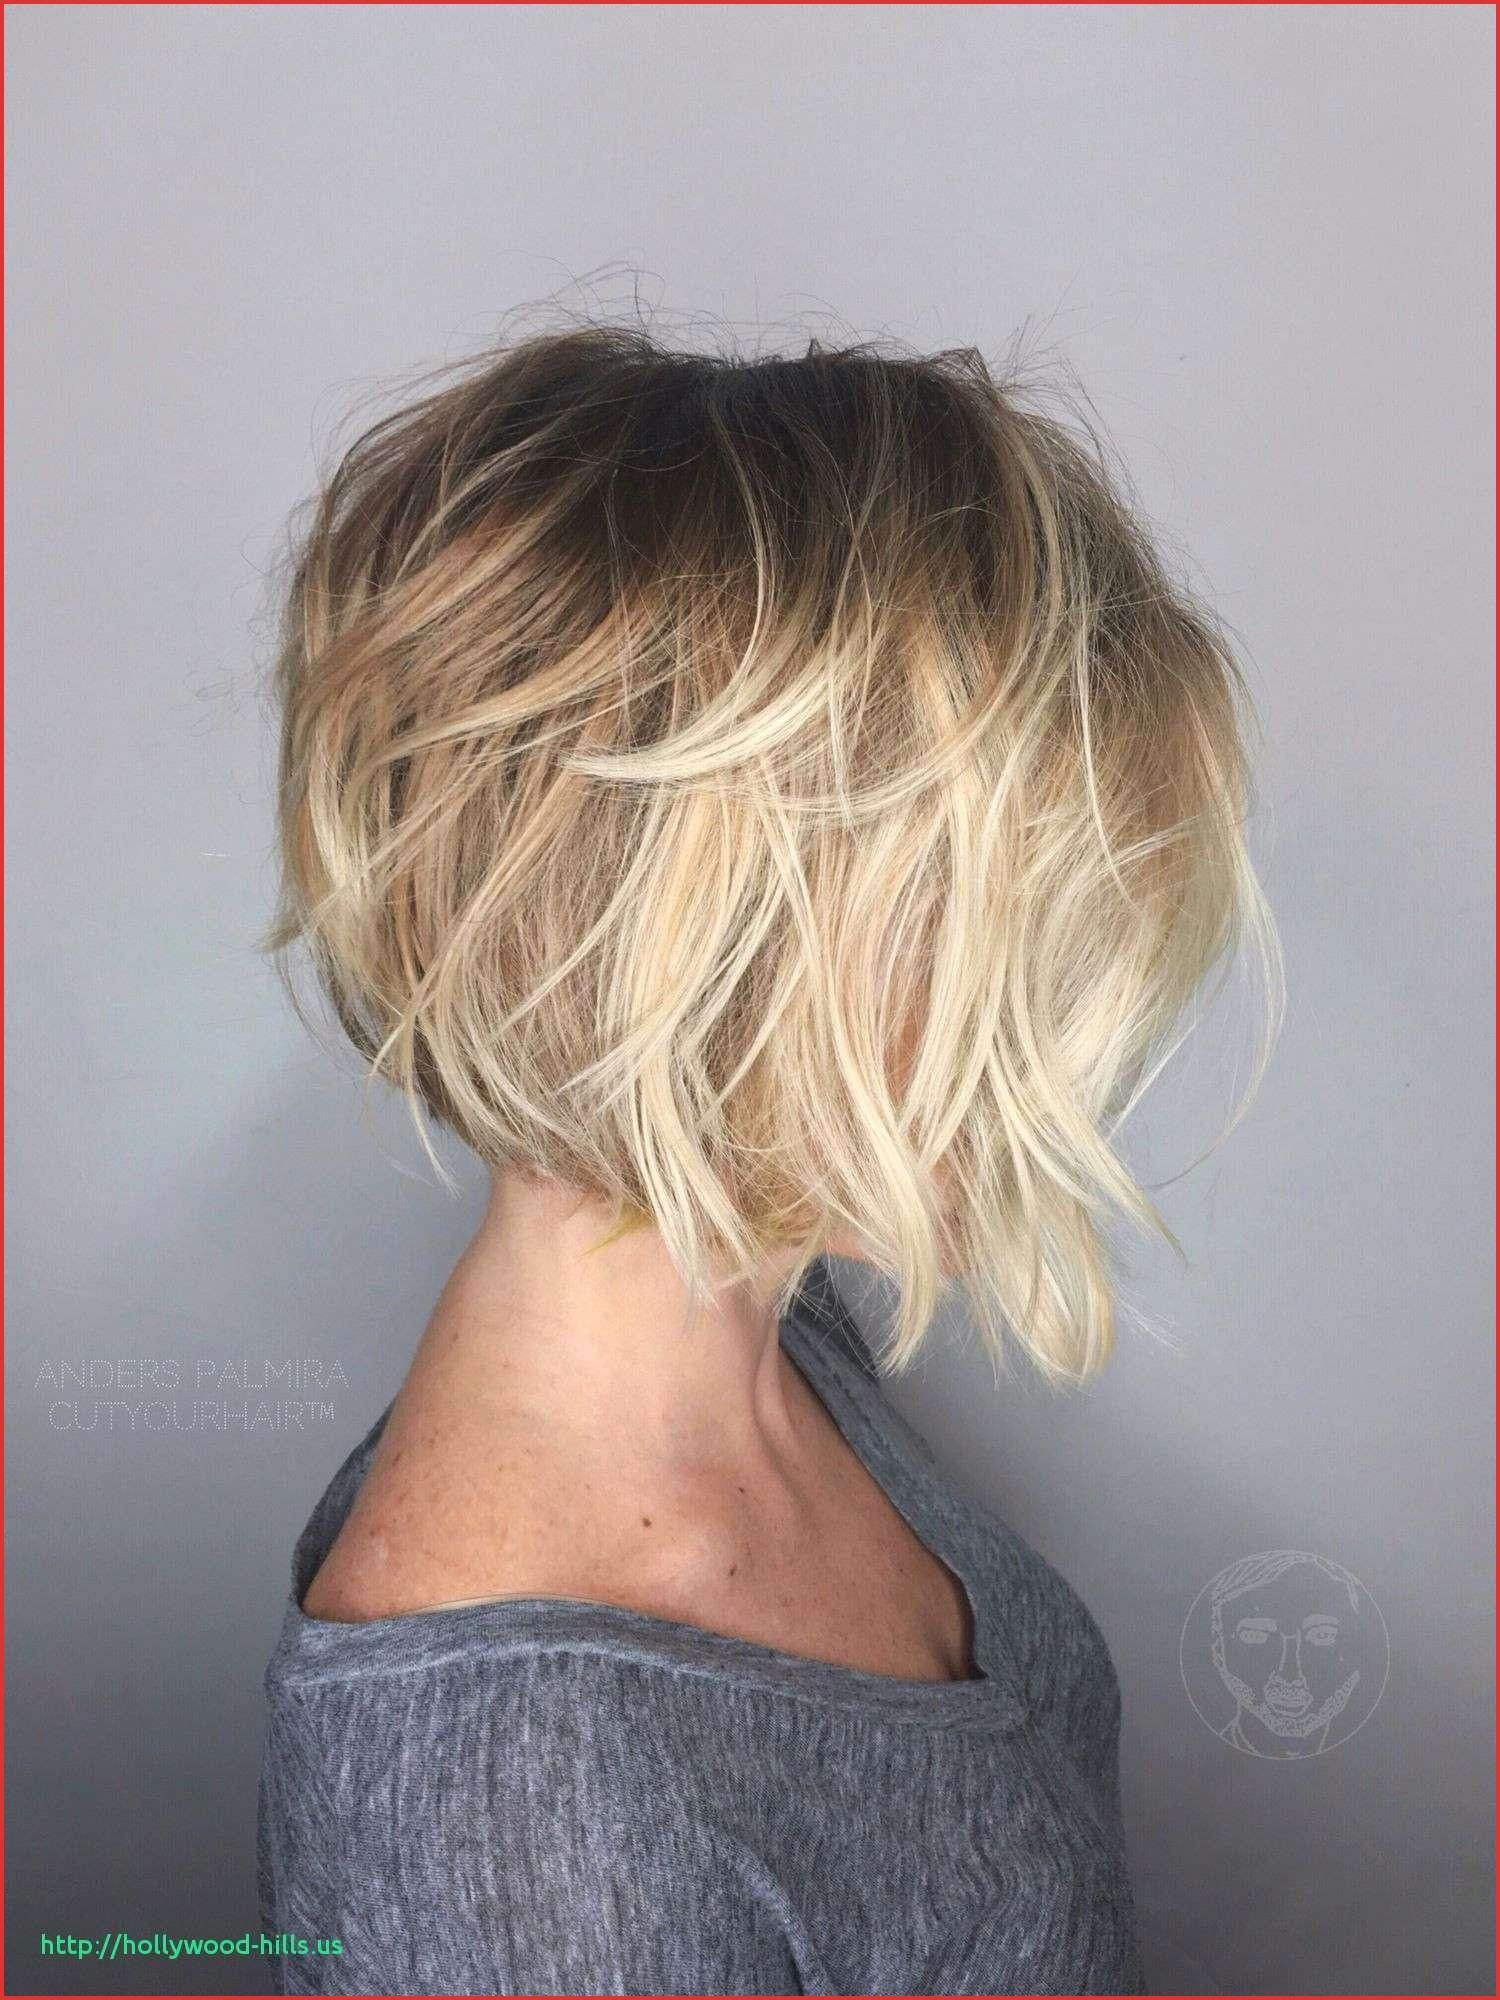 Short Flipped Haircuts 12378 Hairstyles Front And Back View Beautiful Best Mediu Shor In 2020 Bob Hairstyles For Fine Hair Short Hair Styles Messy Bob Hairstyles